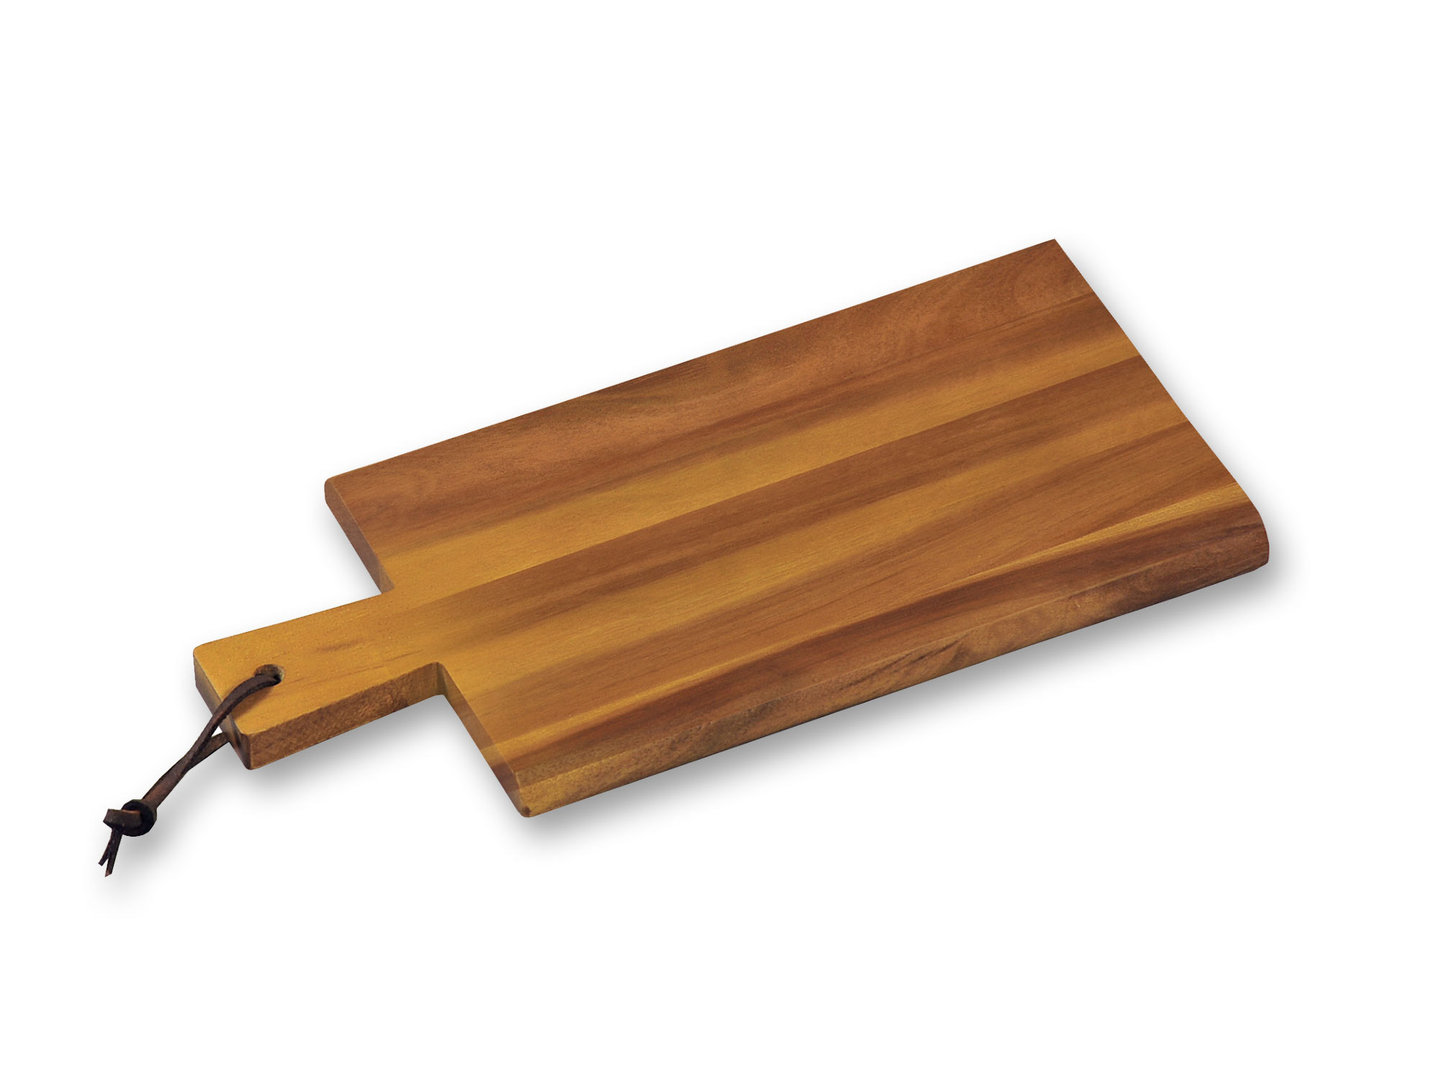 KESPER acacia wood serving tray 29 x 14 x 1,5 cm cutting board